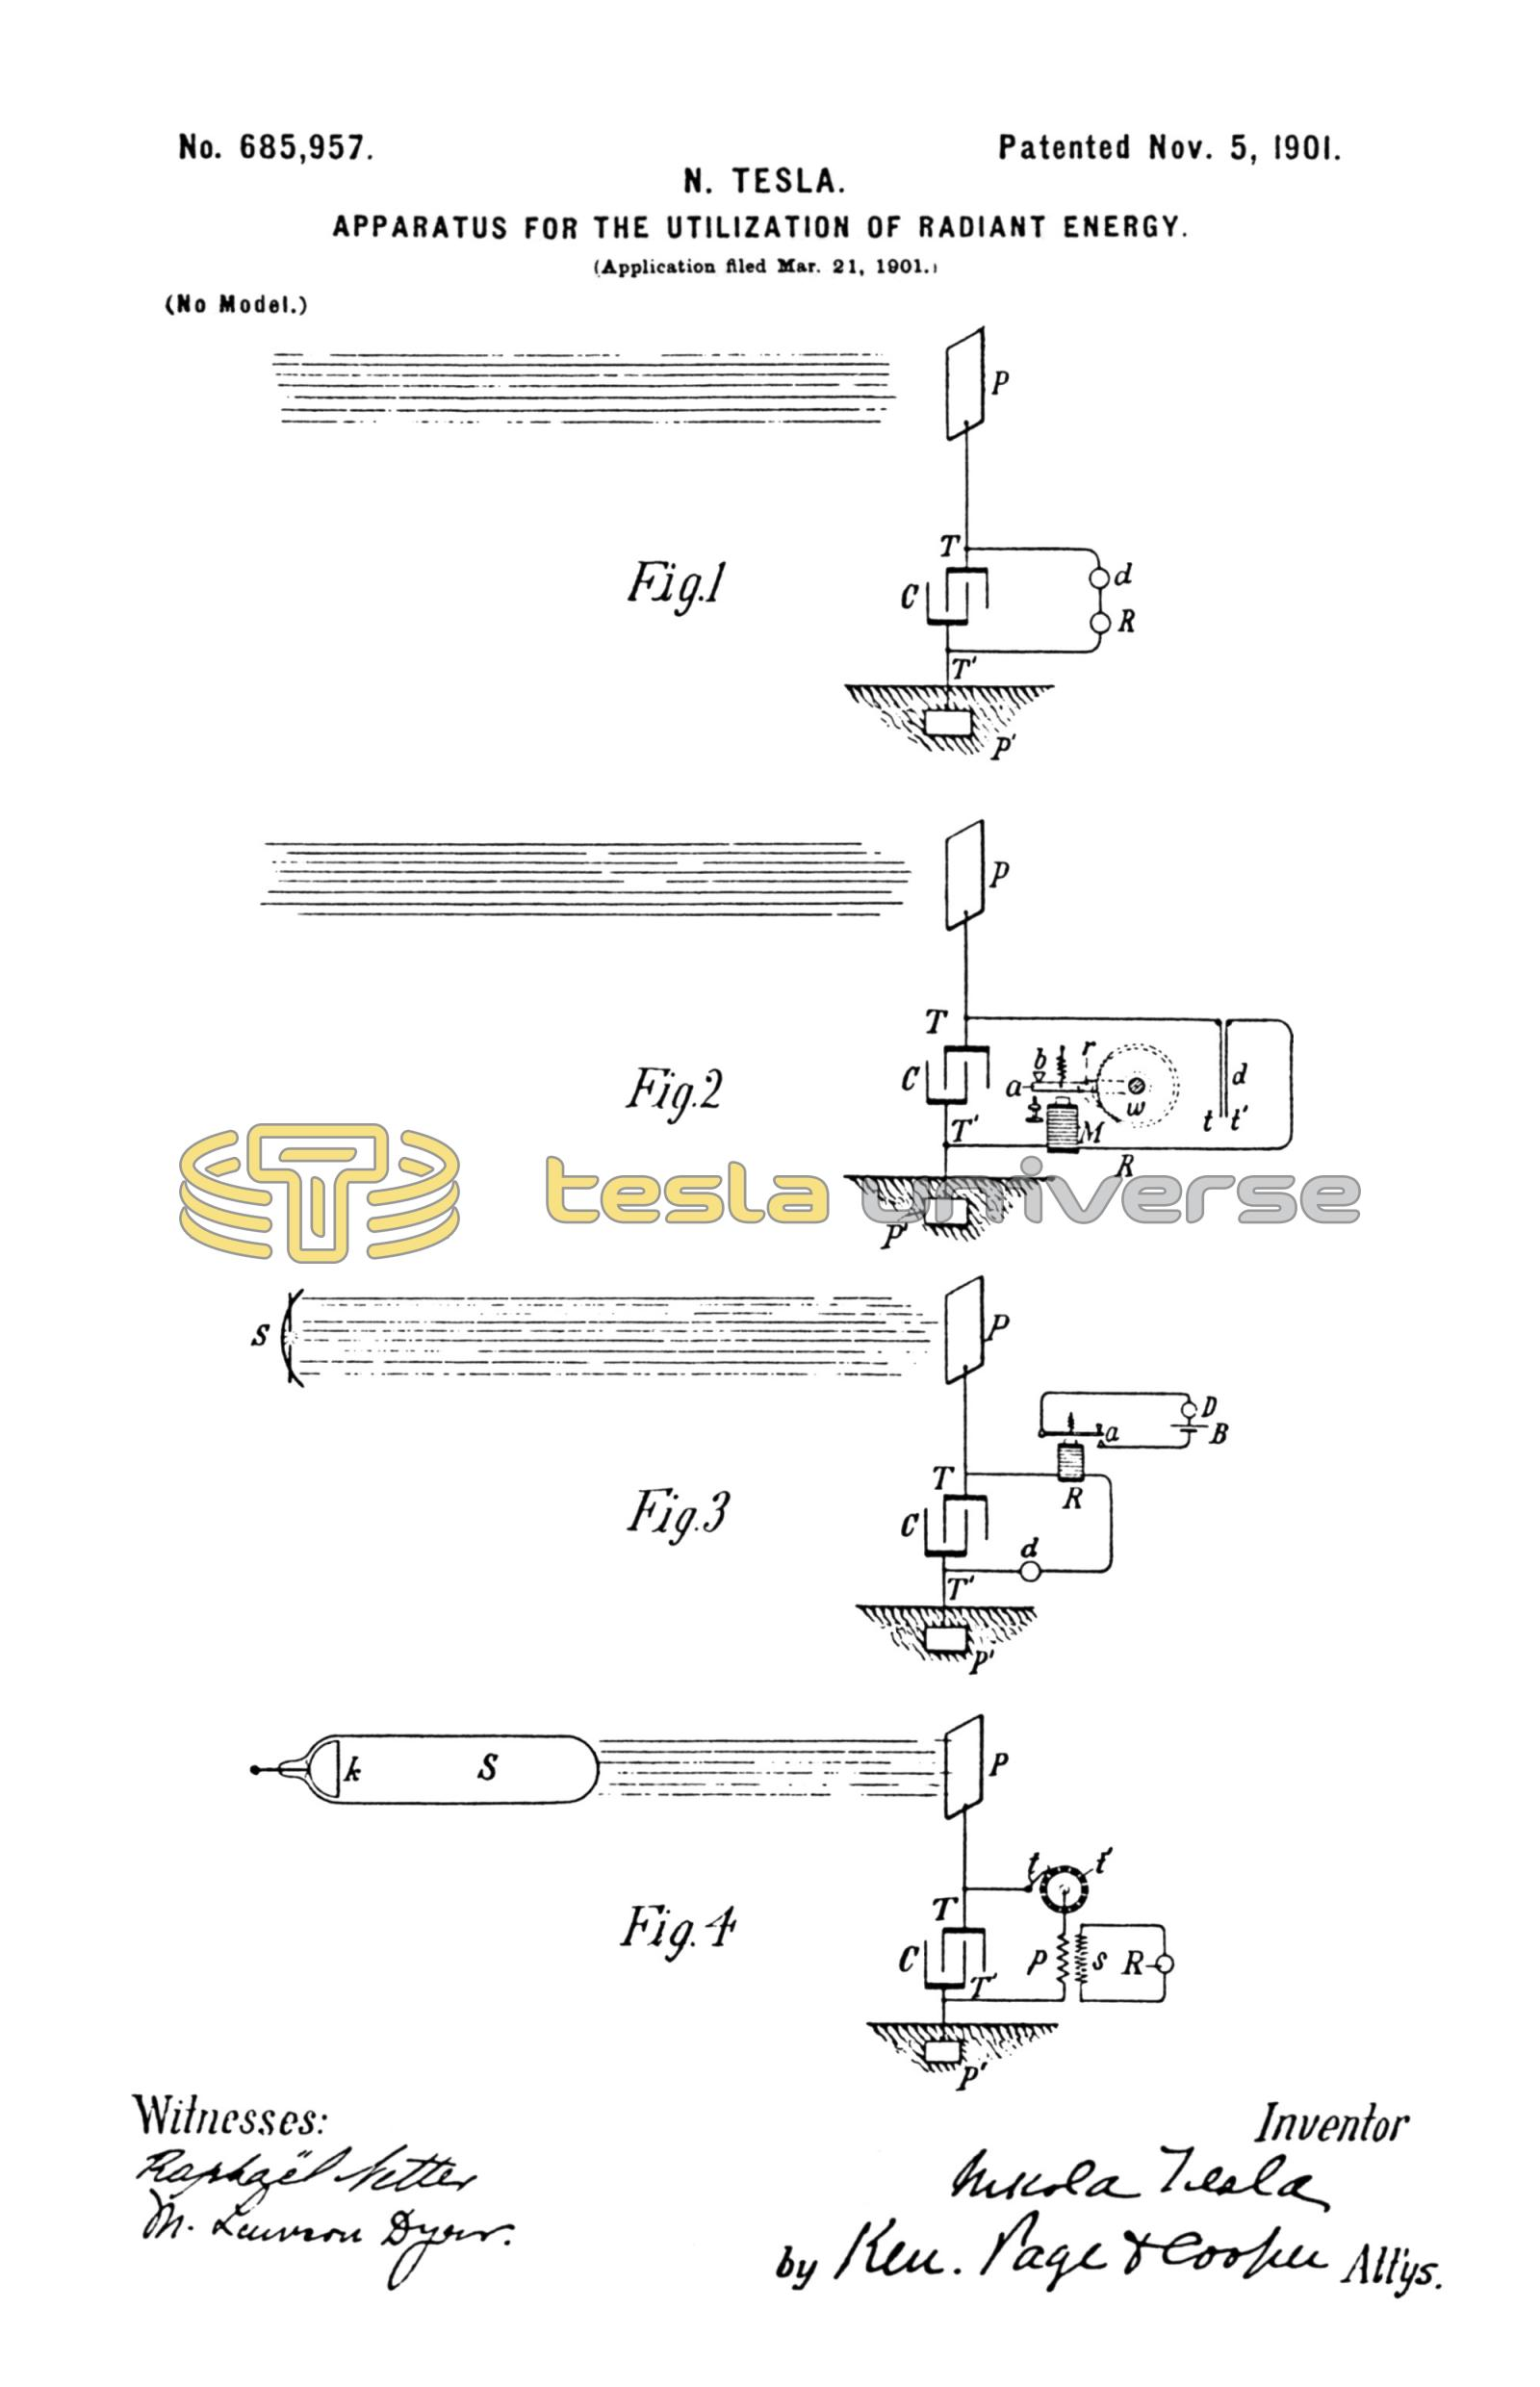 Nikola Tesla U S  Patent 685,957 - Apparatus for the